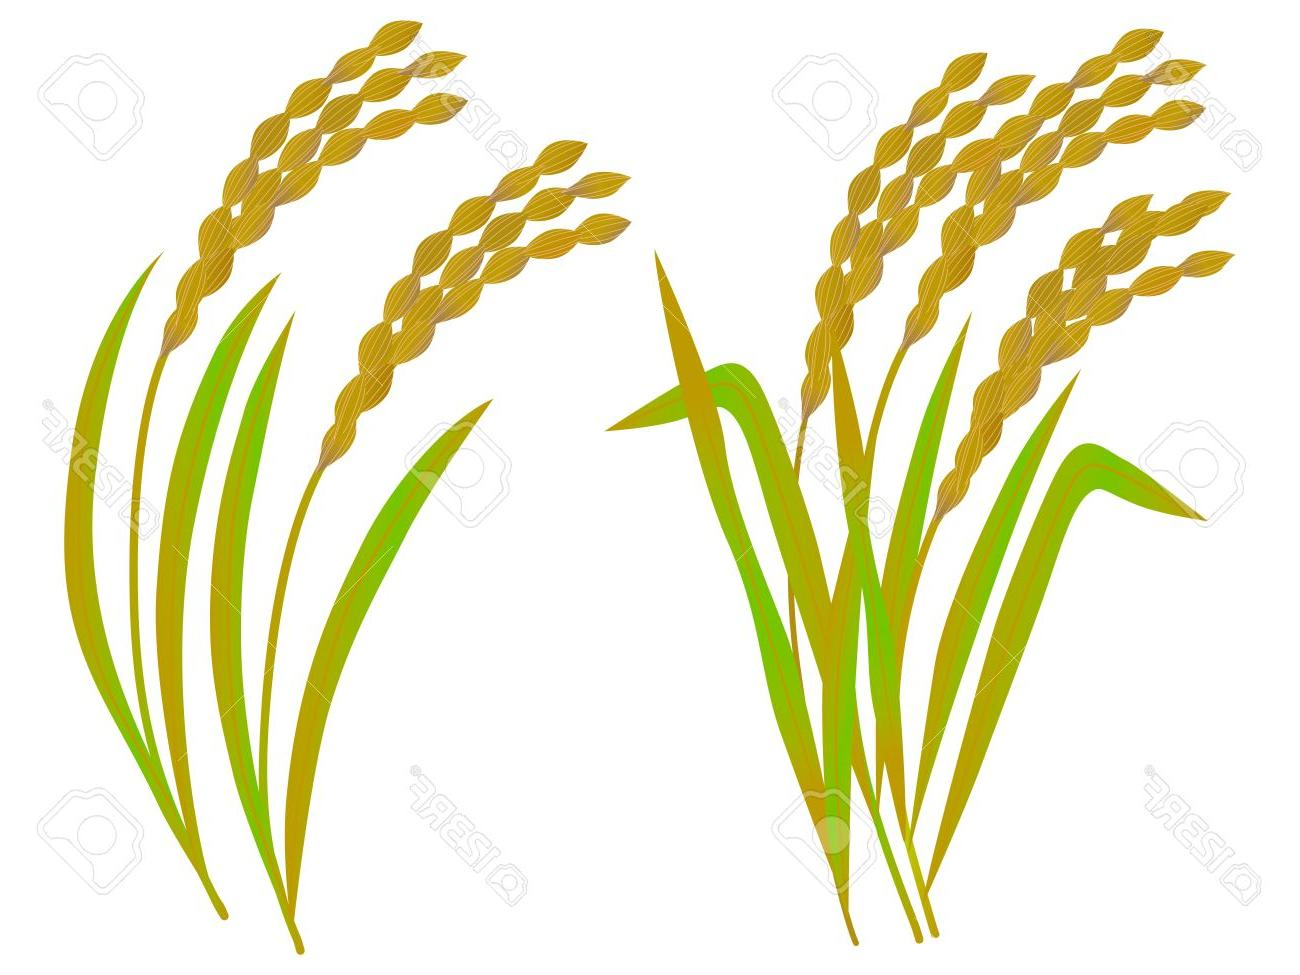 Grain clipart picture transparent stock Grain Clipart | Free download best Grain Clipart on ClipArtMag.com picture transparent stock